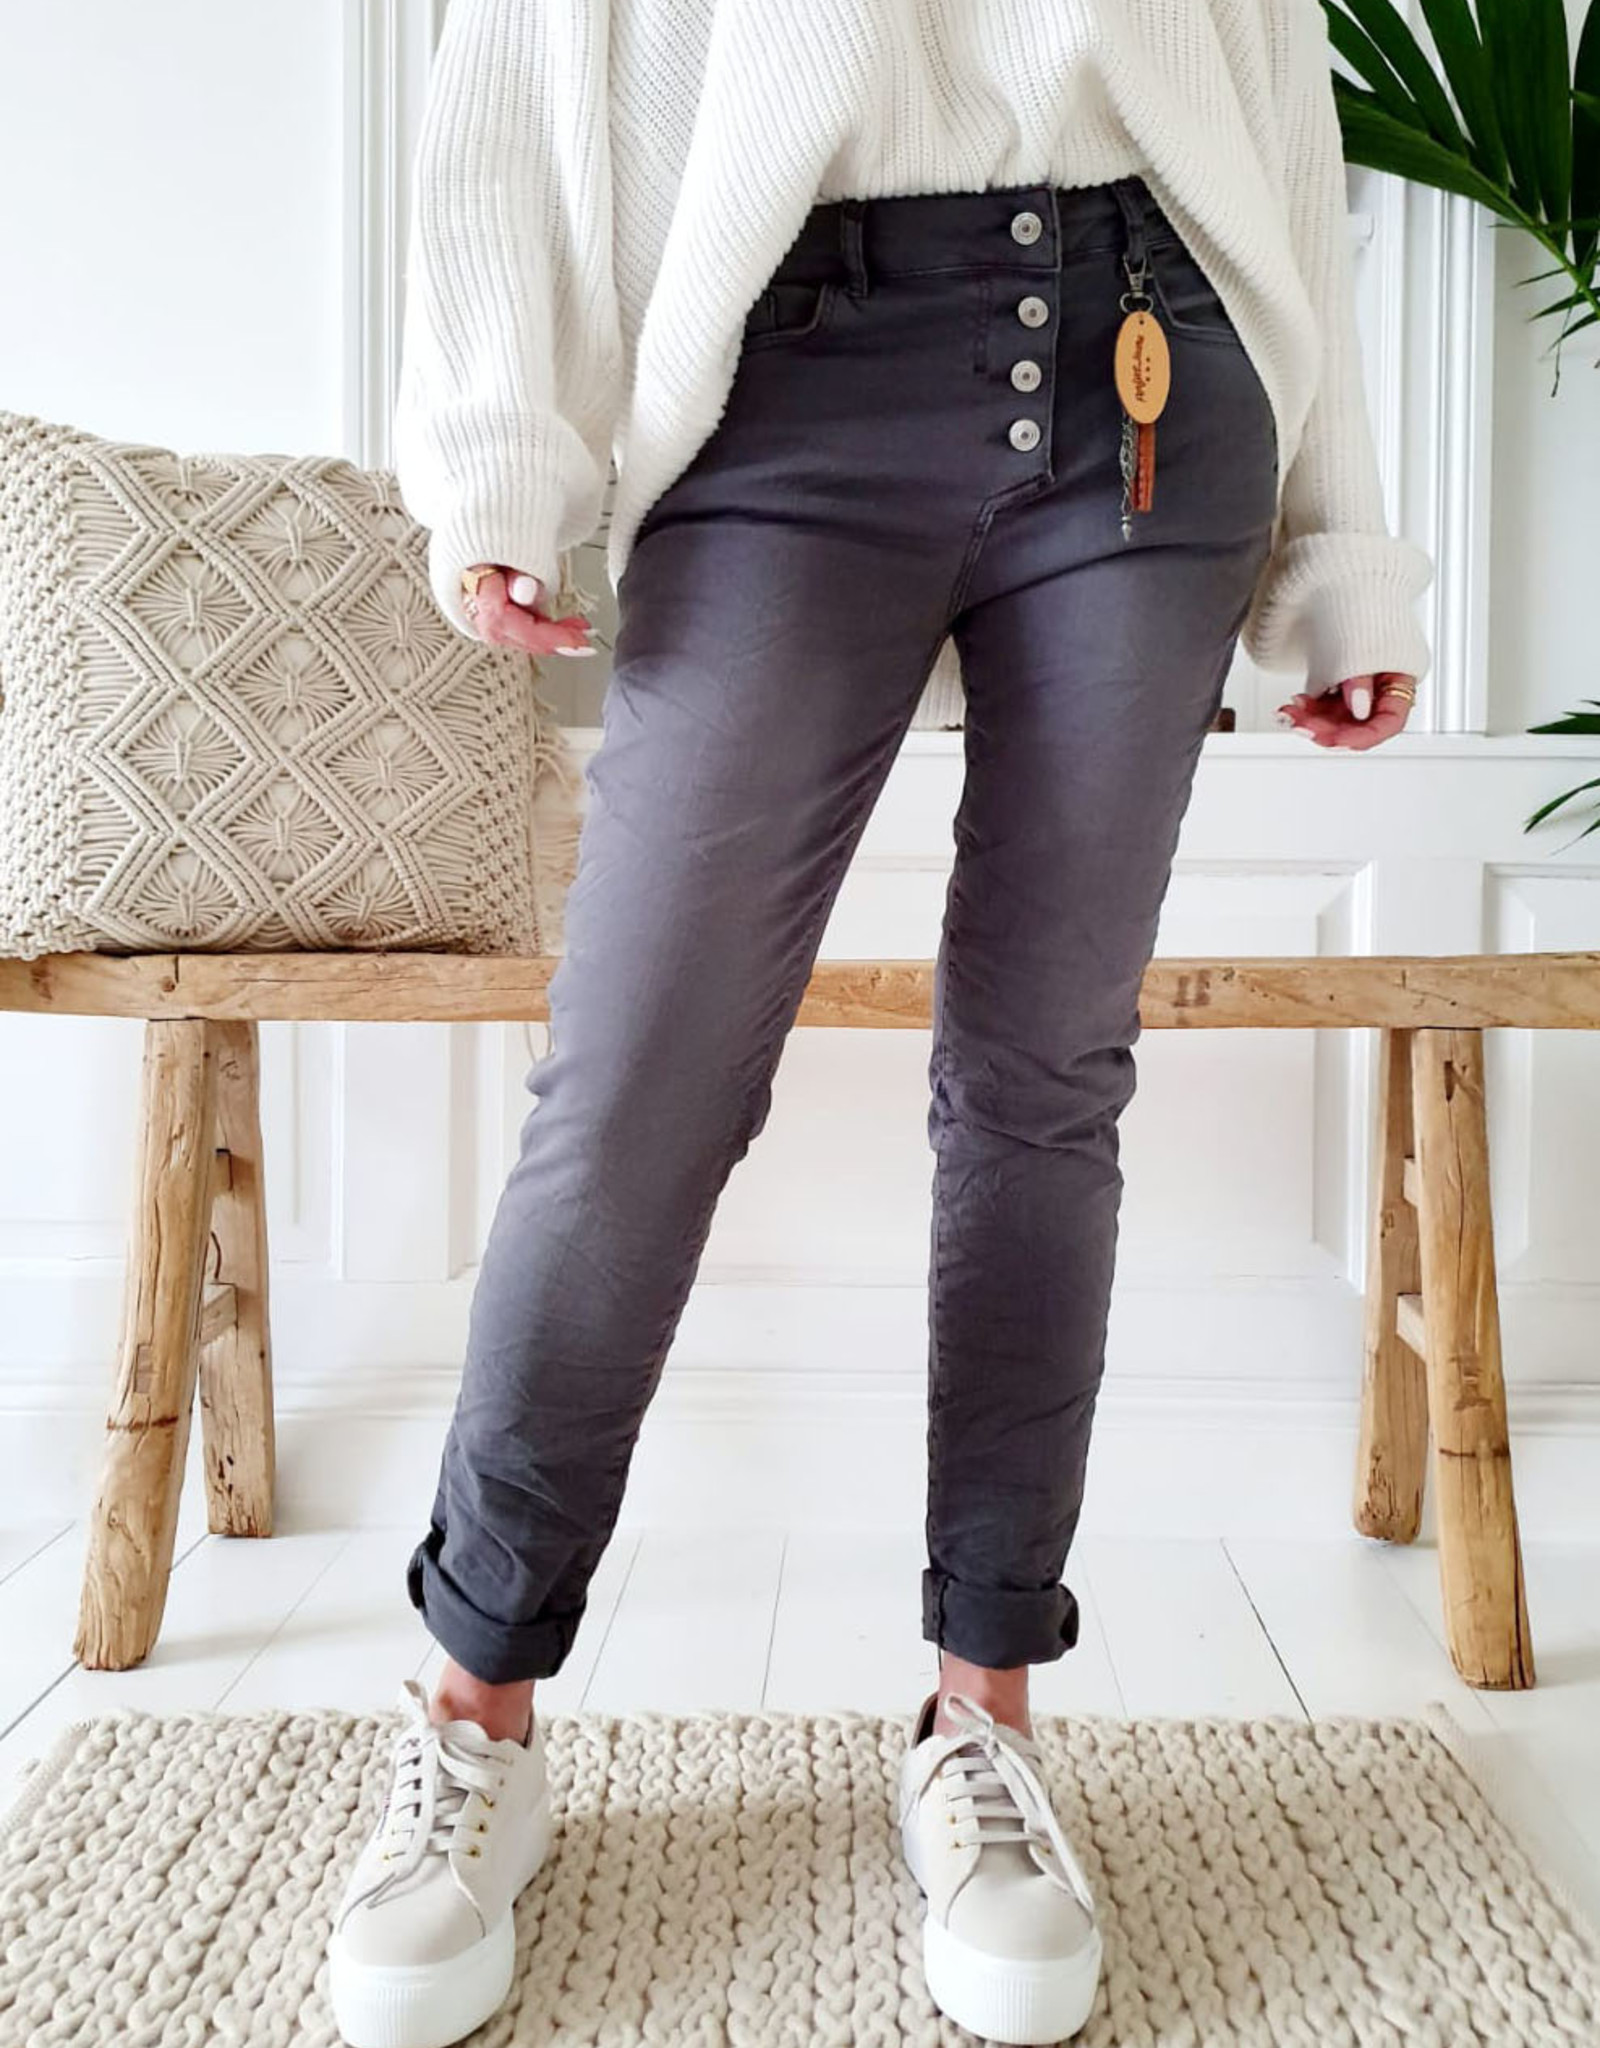 SALE - BYPIAS SUPER COMFY JEANS ALMOST BLACK